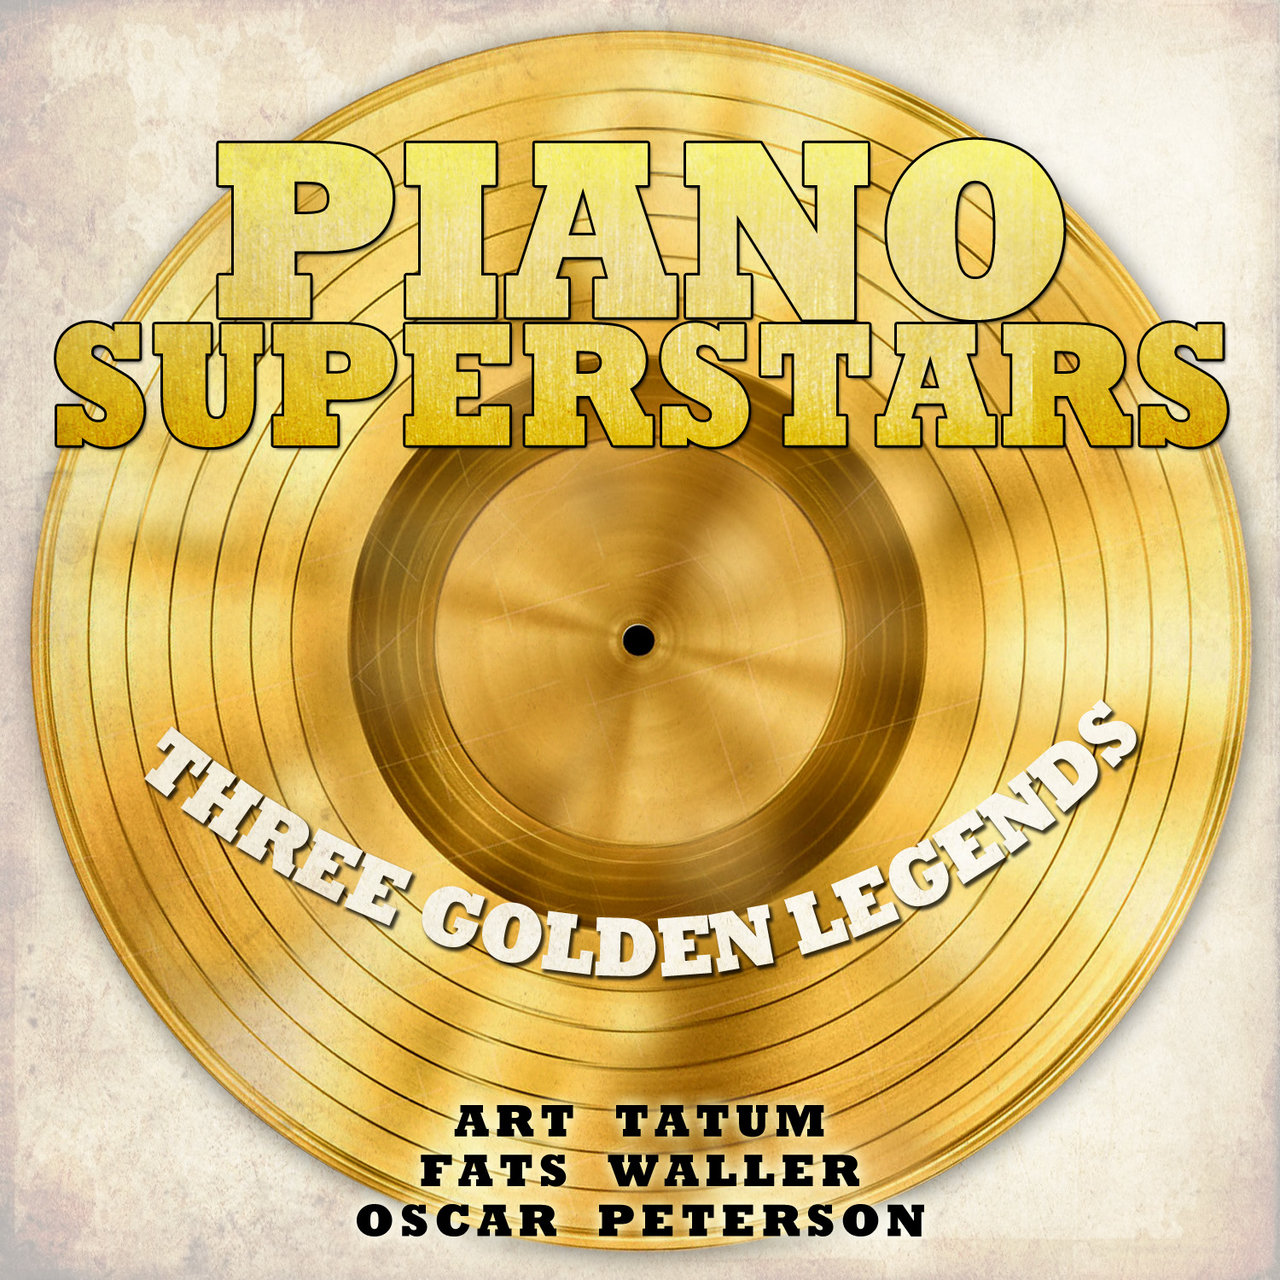 Piano Superstars, Three Golden Legends - Art Tatum, Fats Waller, Oscar Peterson